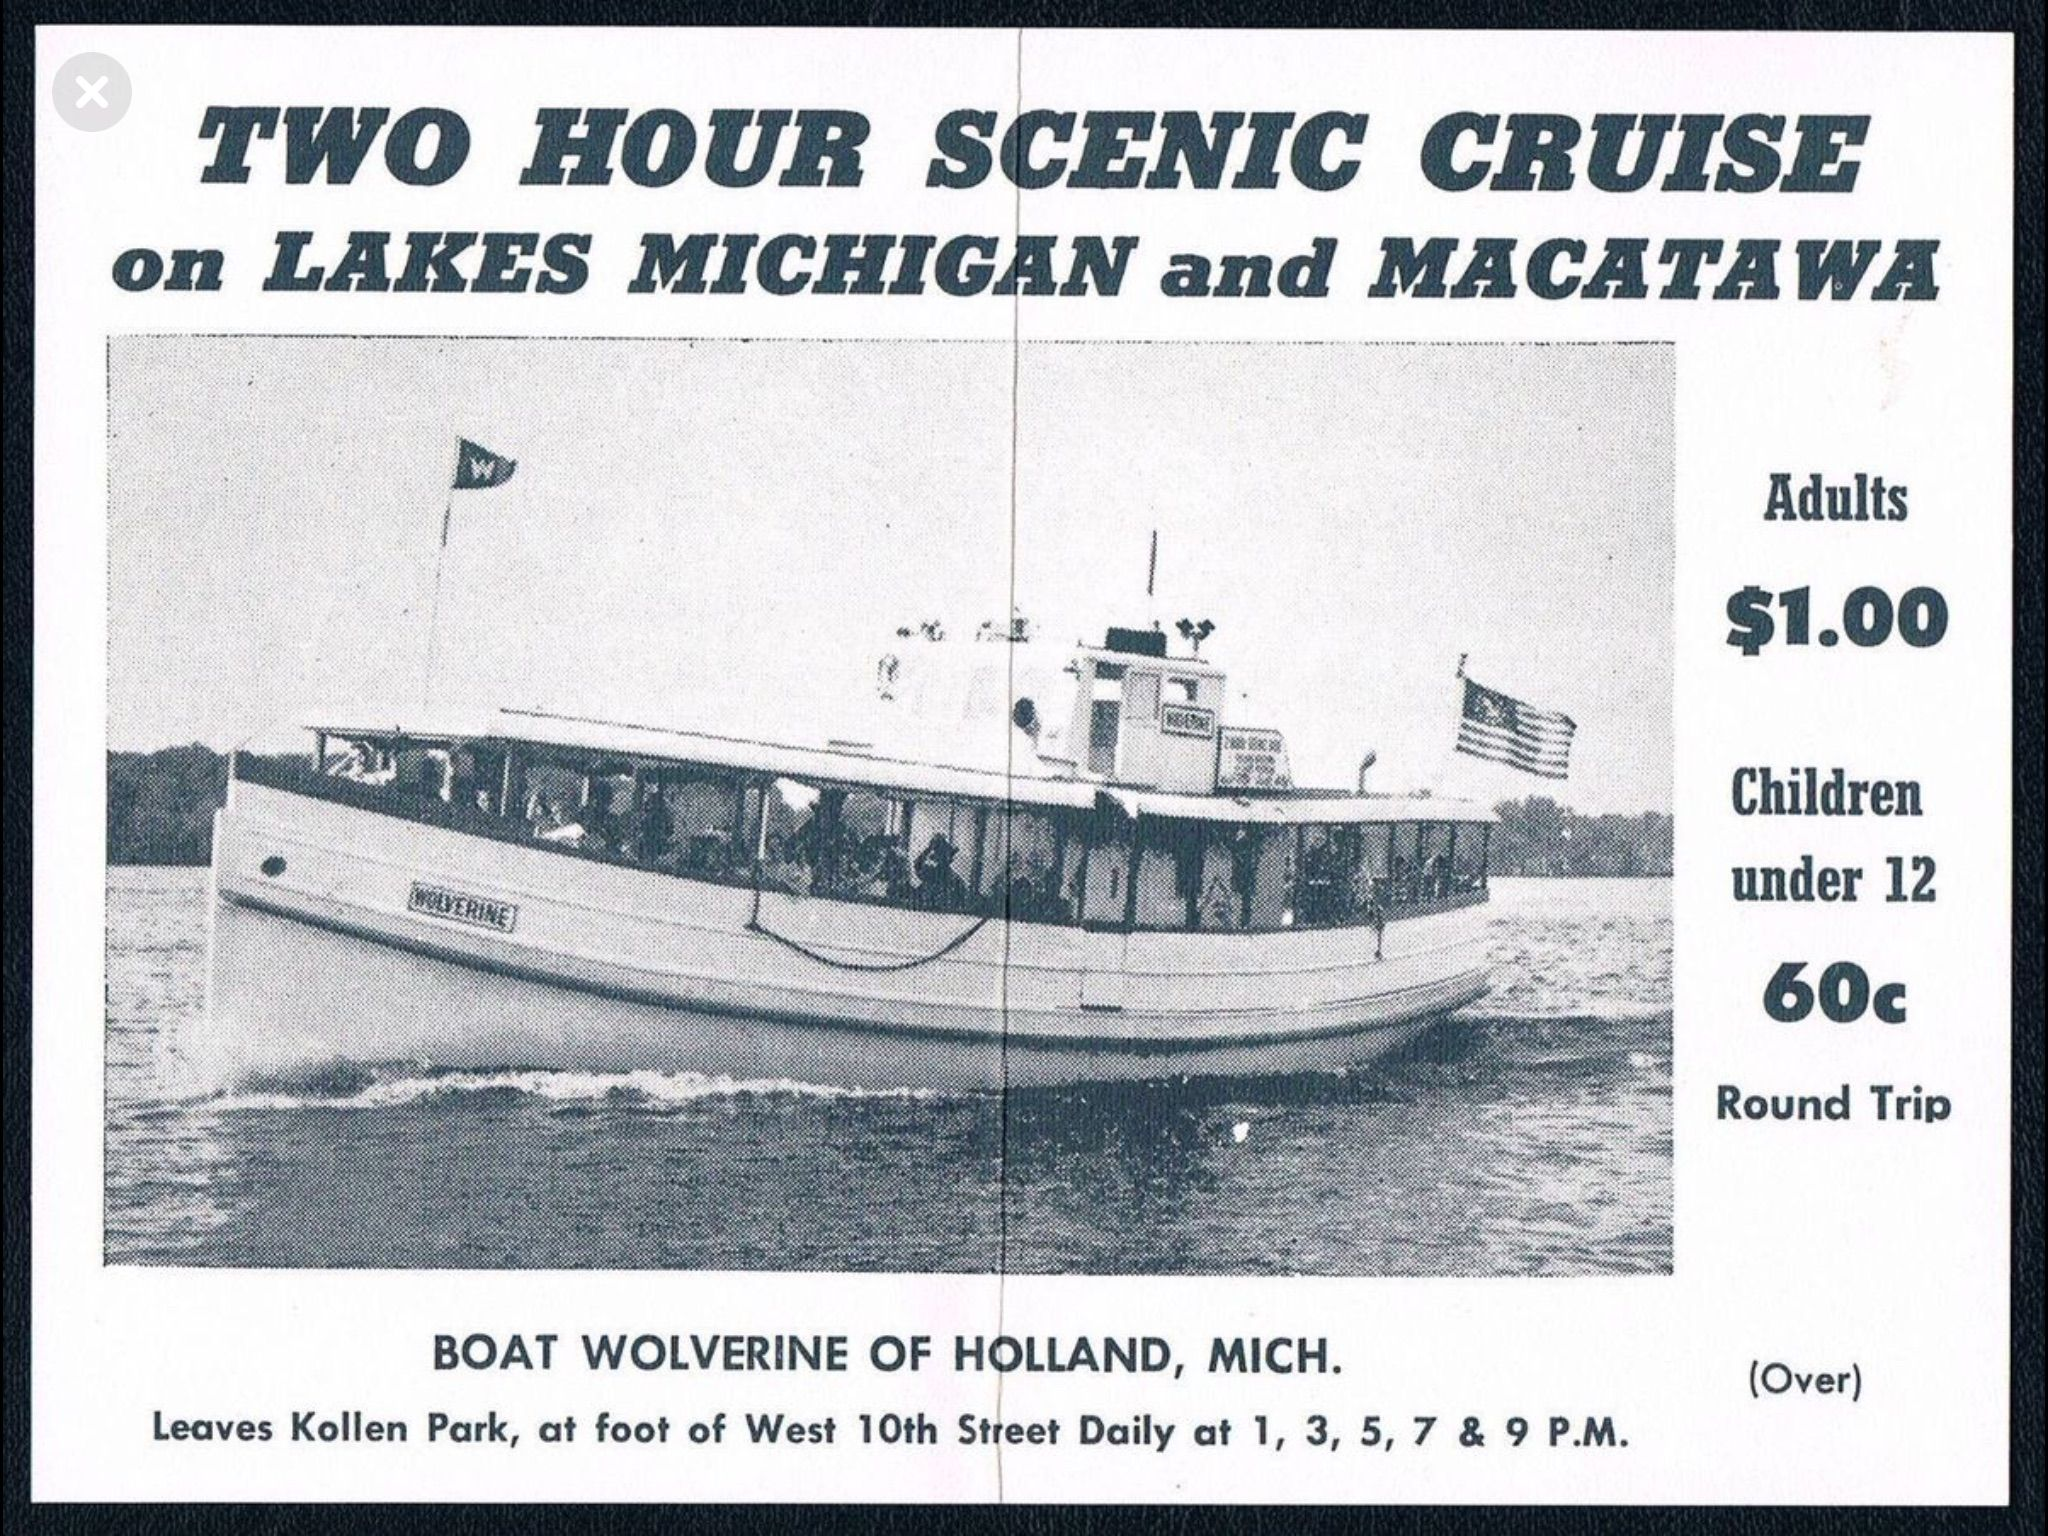 Scenic boat tours of Lake Mac and Lake Michigan on the